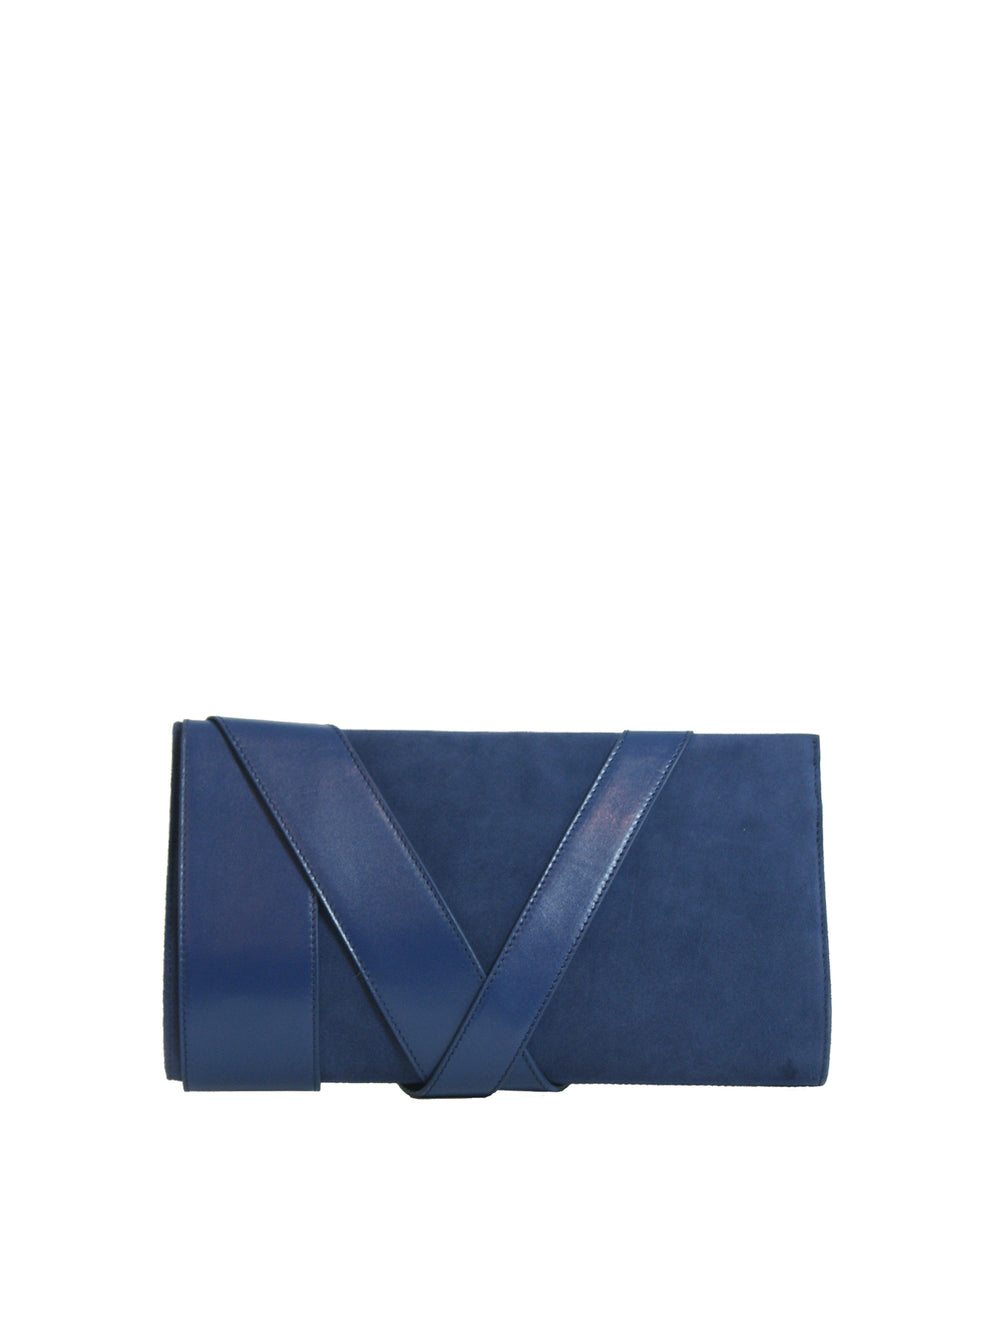 Veronica Clutch, Z SPOKE BY ZAC POSEN - elilhaam.com